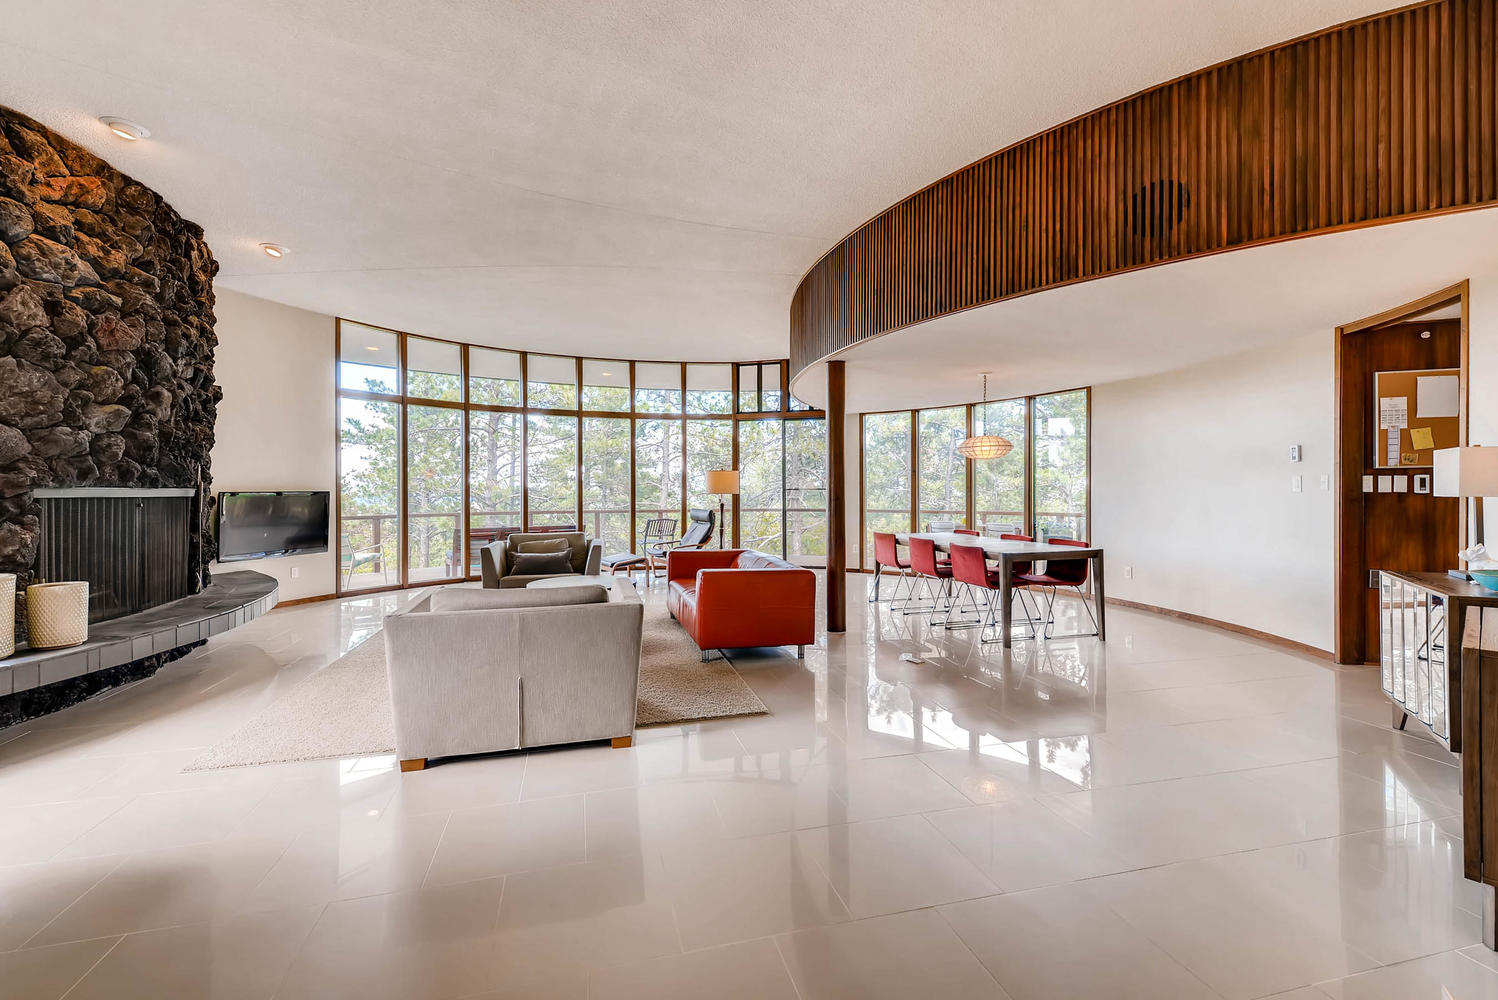 '70s Spaceship-like House With Views Wants $925K In